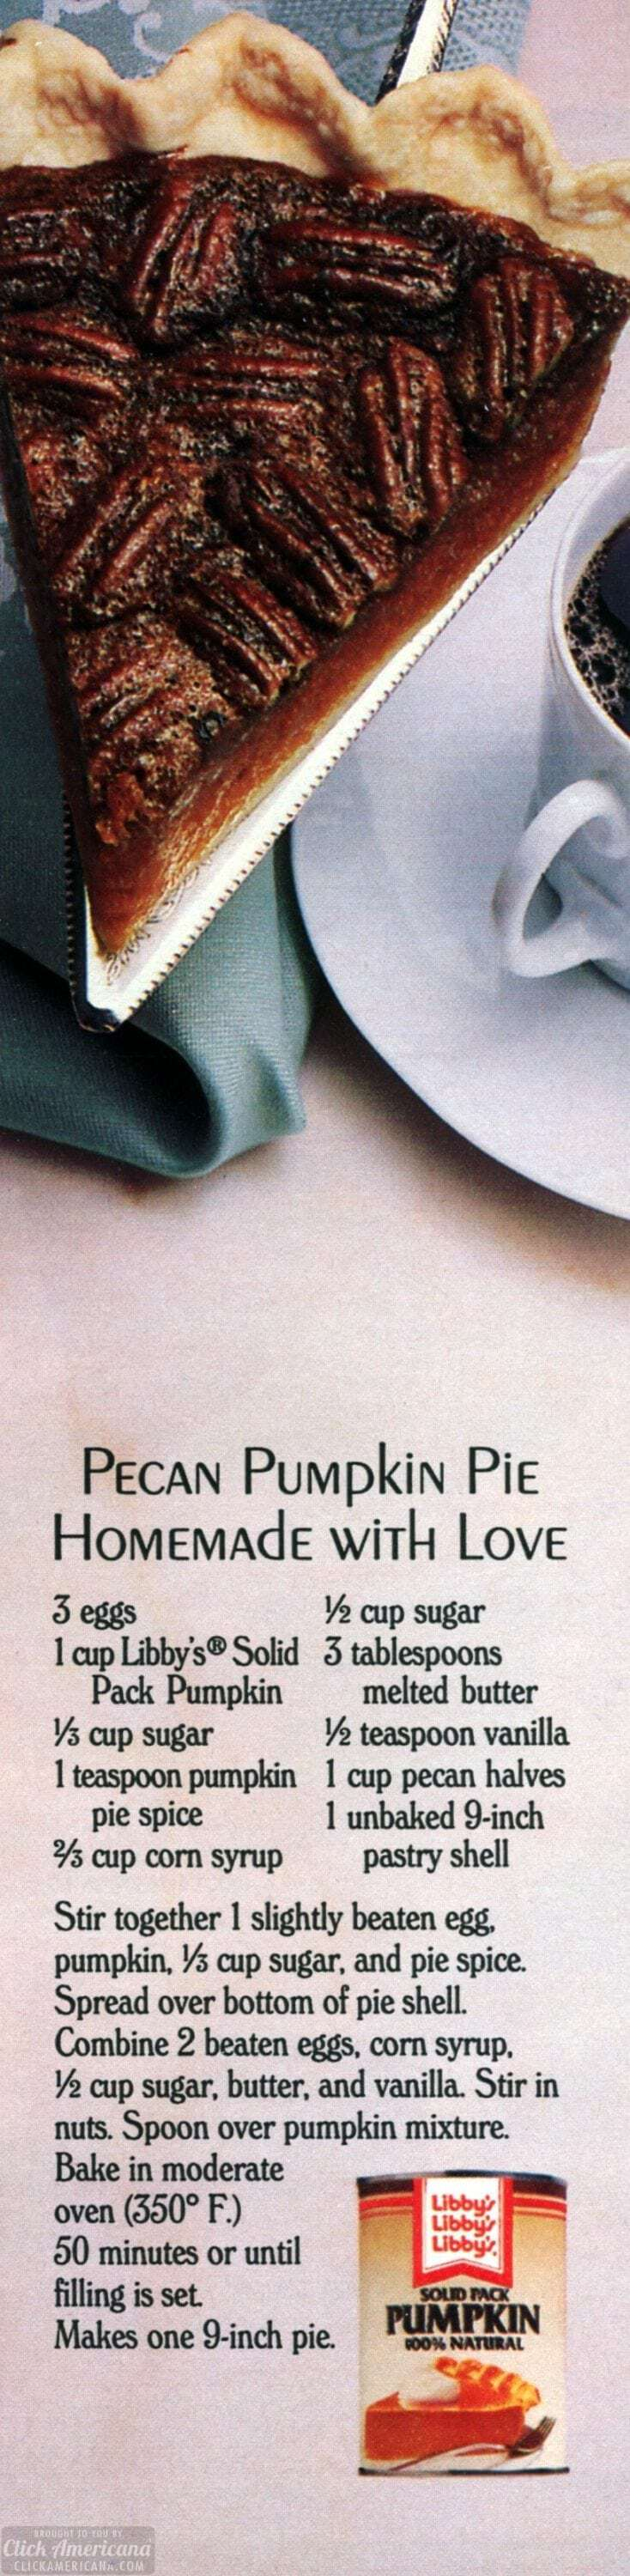 Pecan pumpkin pie recipe (1987)